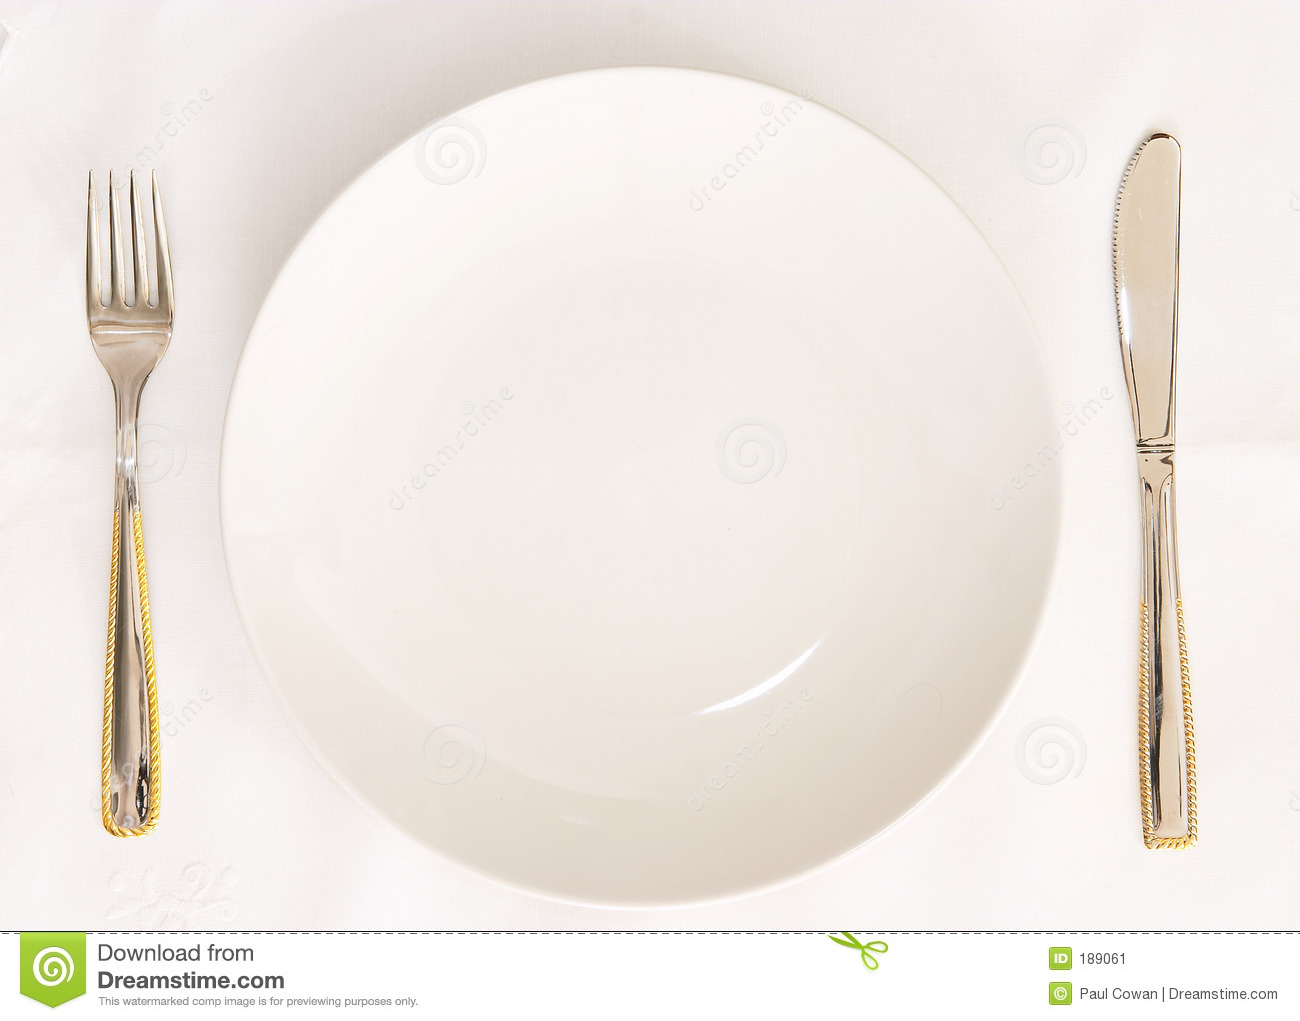 Empty Plate Stock Image Image 189061 : empty plate 189061 from www.dreamstime.com size 1300 x 1021 jpeg 170kB